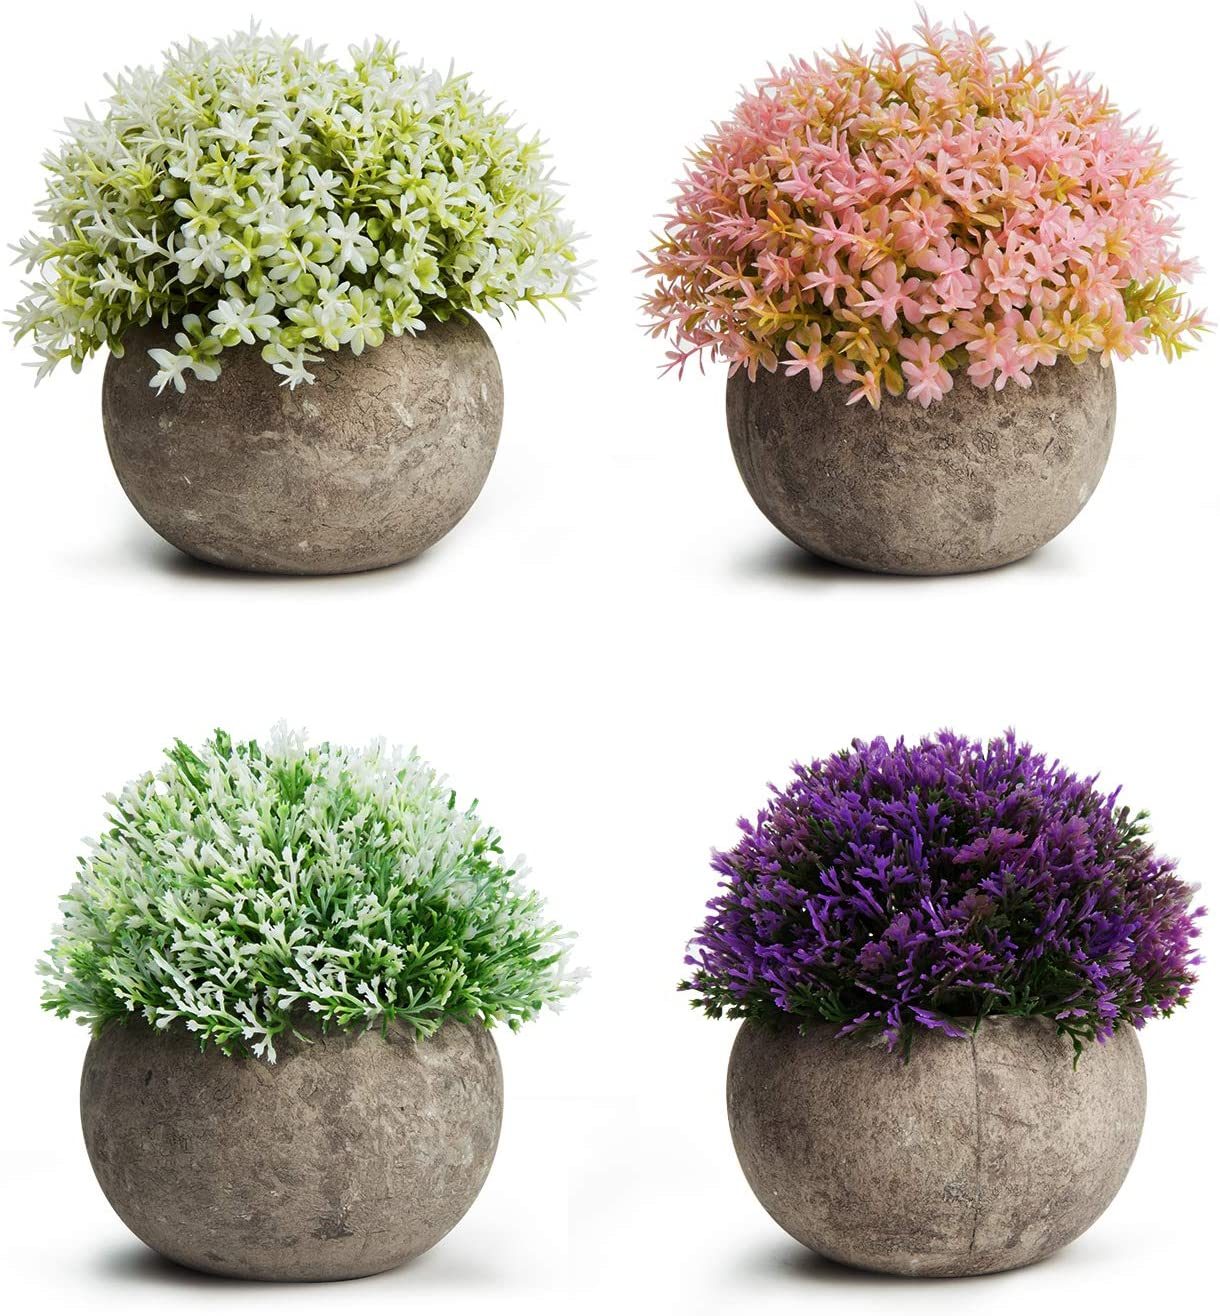 MoonLa Artificial Plants Potted Faux Fake Mini Plant Colorful Flower Topiary Shrubs in Gray Pot for Bathroom Home House Decor (Set of 4) -